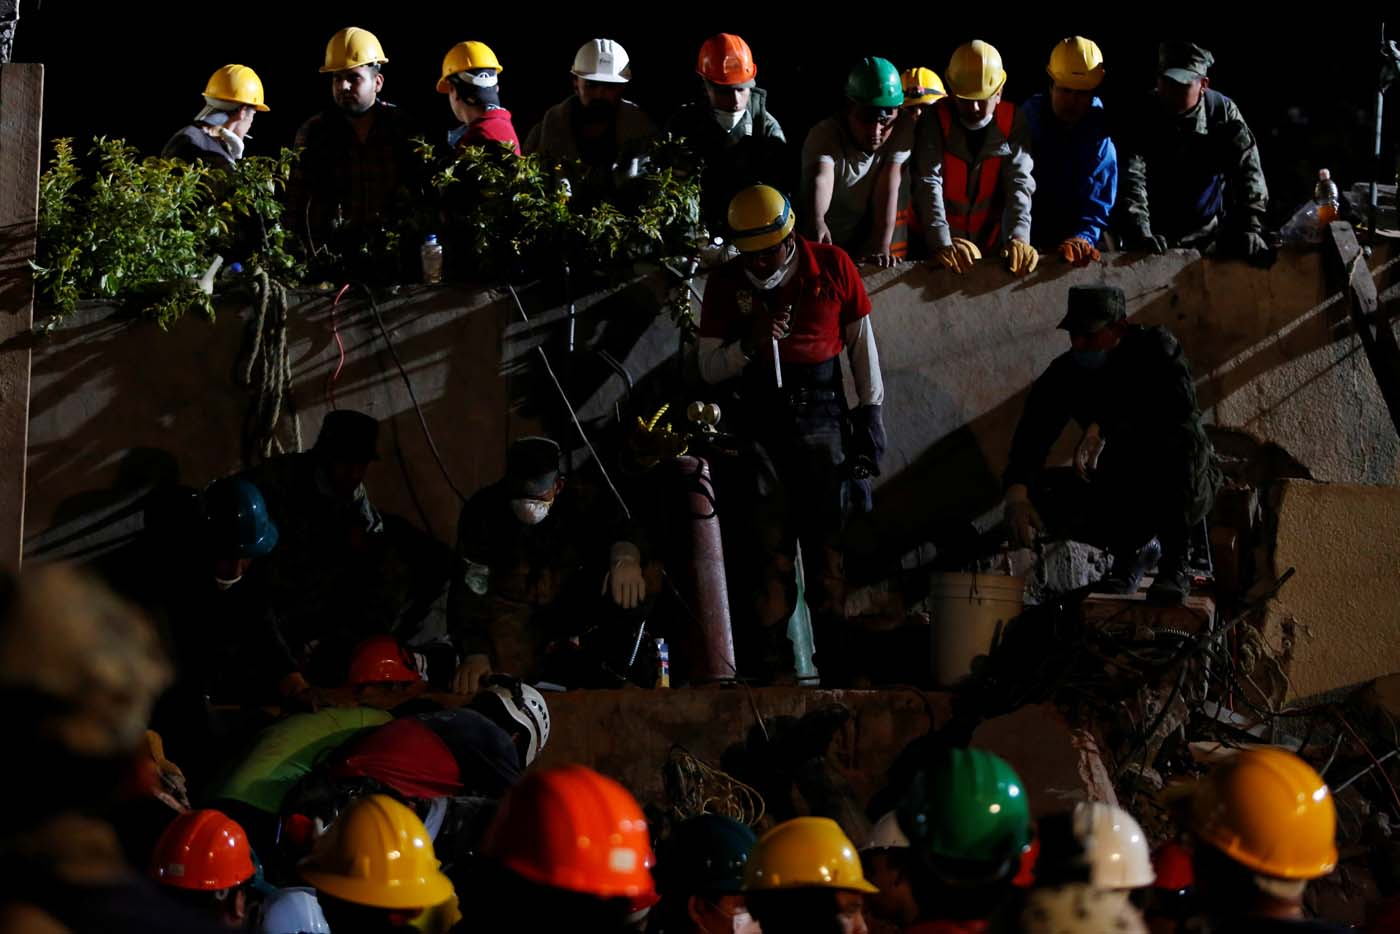 Rescue workers search through rubble in a floodlit search for students at Enrique Rebsamen school in Mexico City, Mexico September 20, 2017. REUTERS/Carlos Jasso